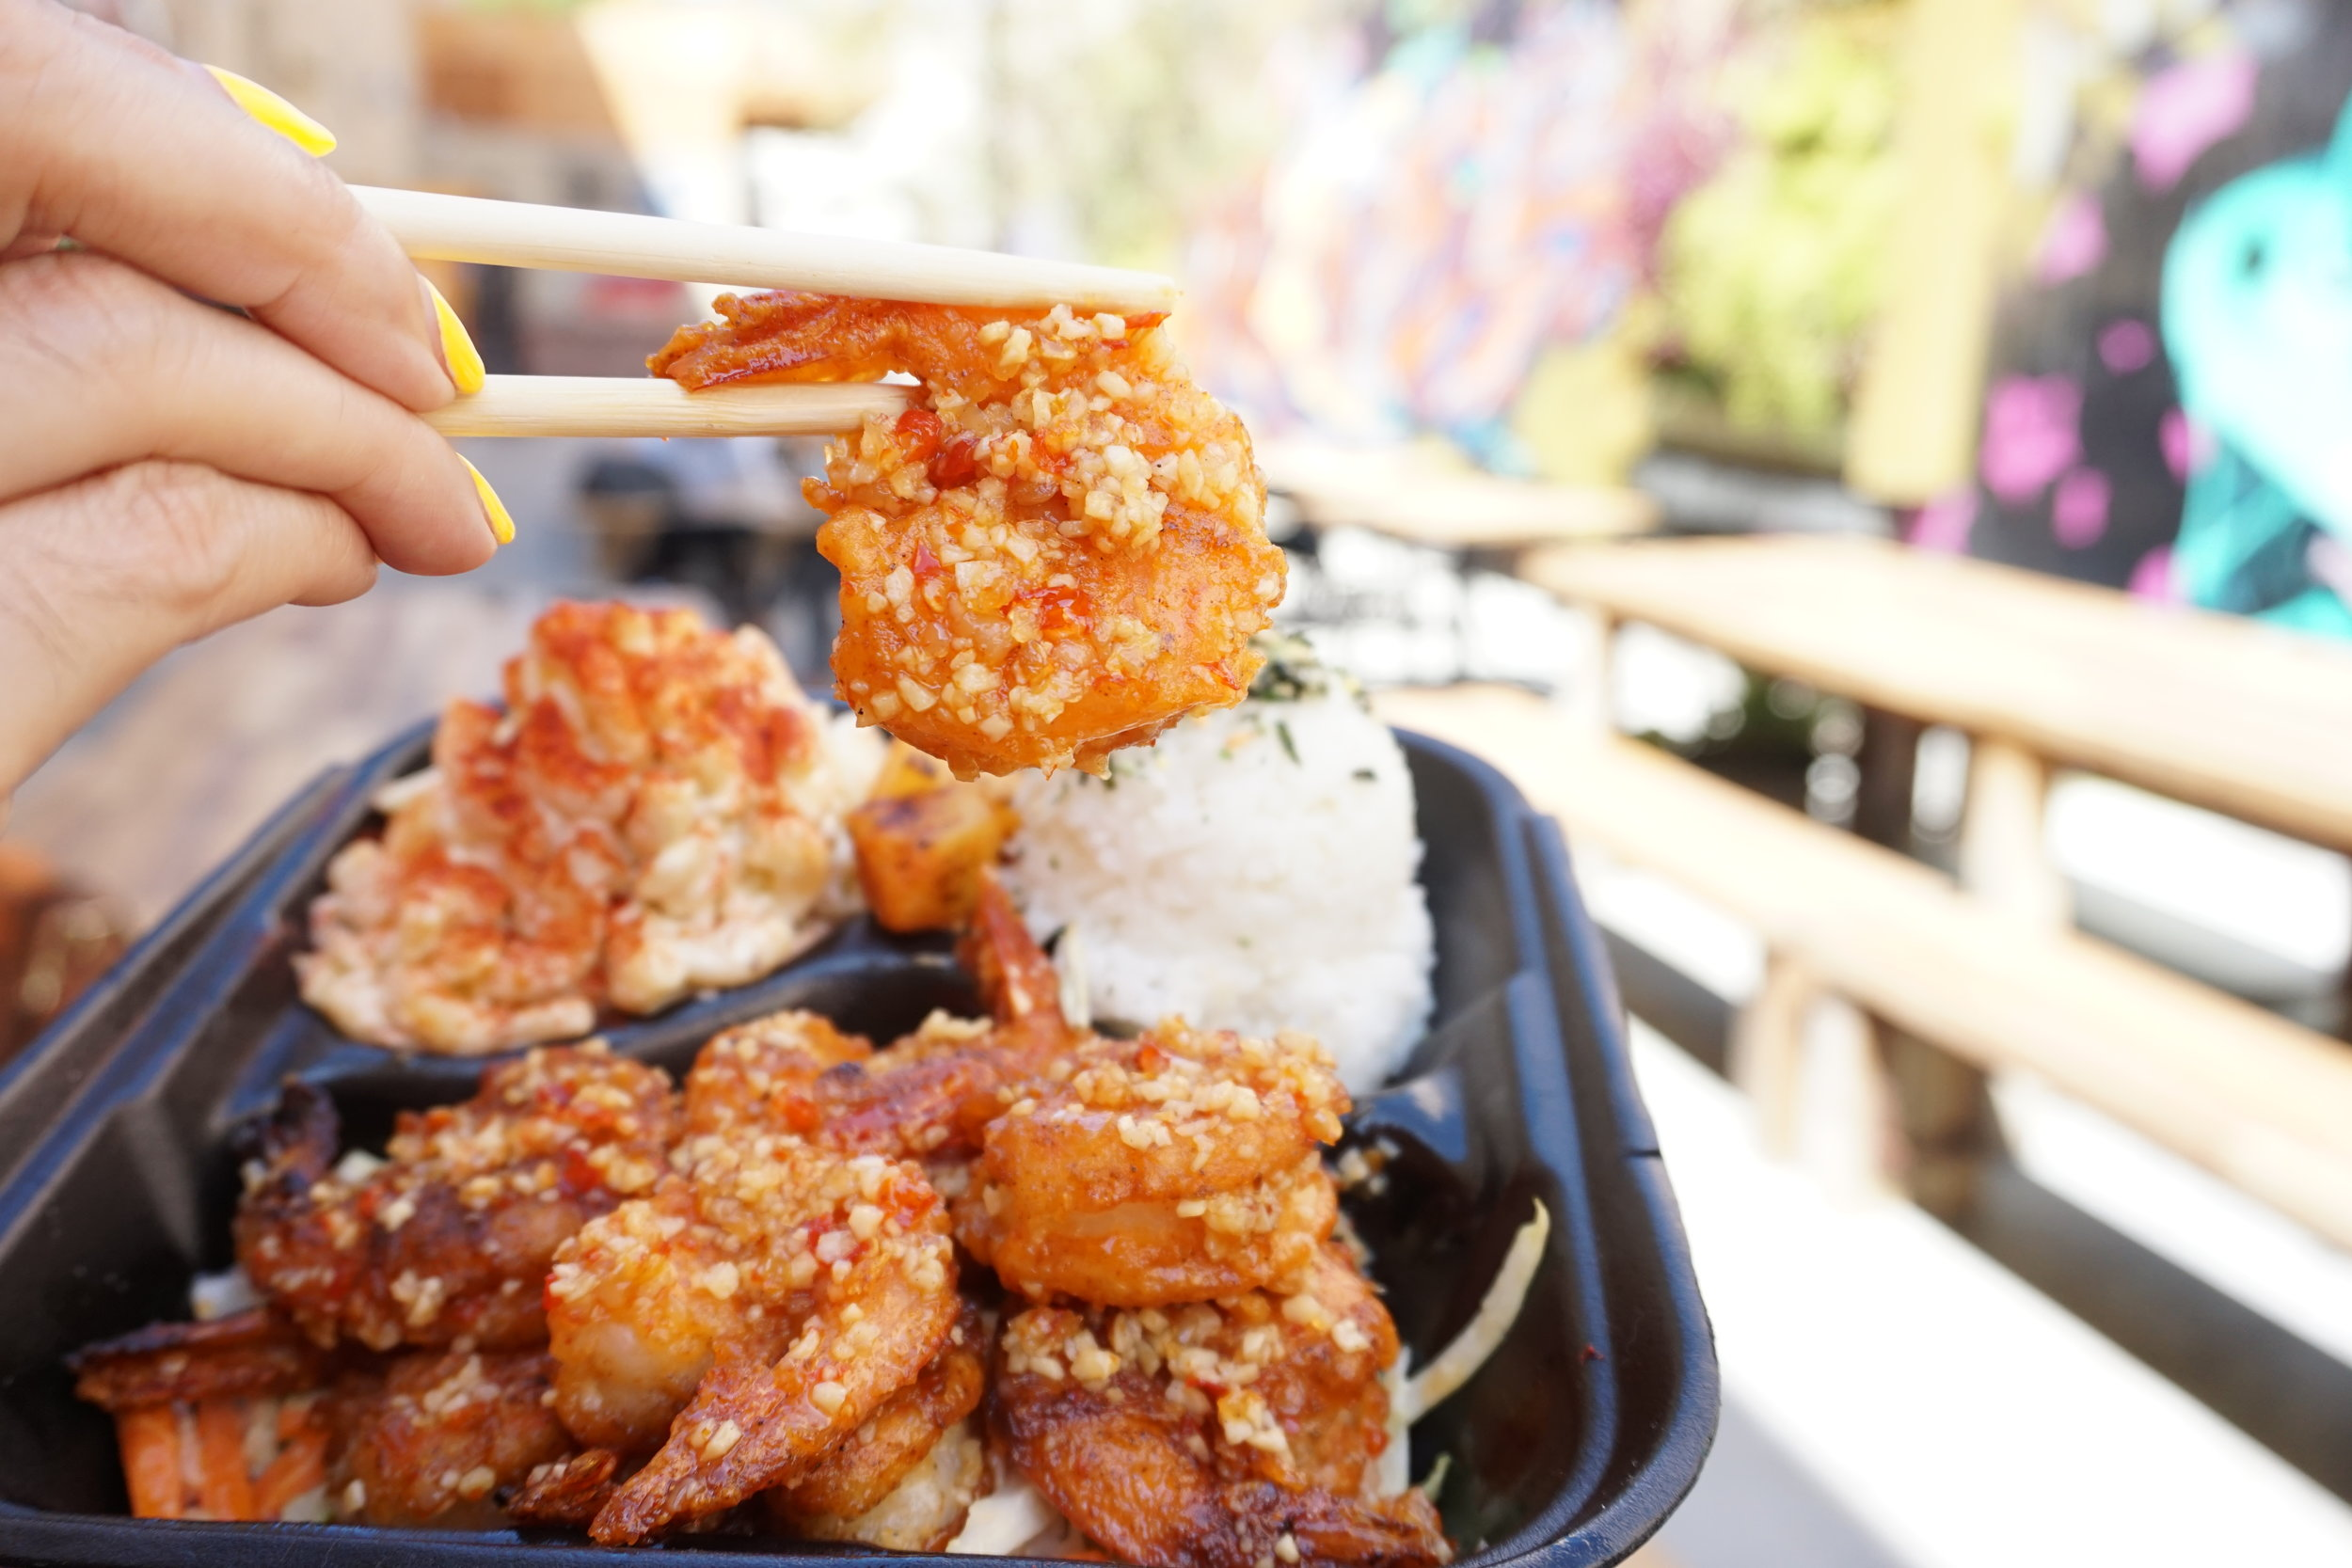 Faka's Island Grill bringing the flavors of the South Pacific through their Garlic Shrimp, now available at 4th Street Market | photo courtesy of 100inc Agency